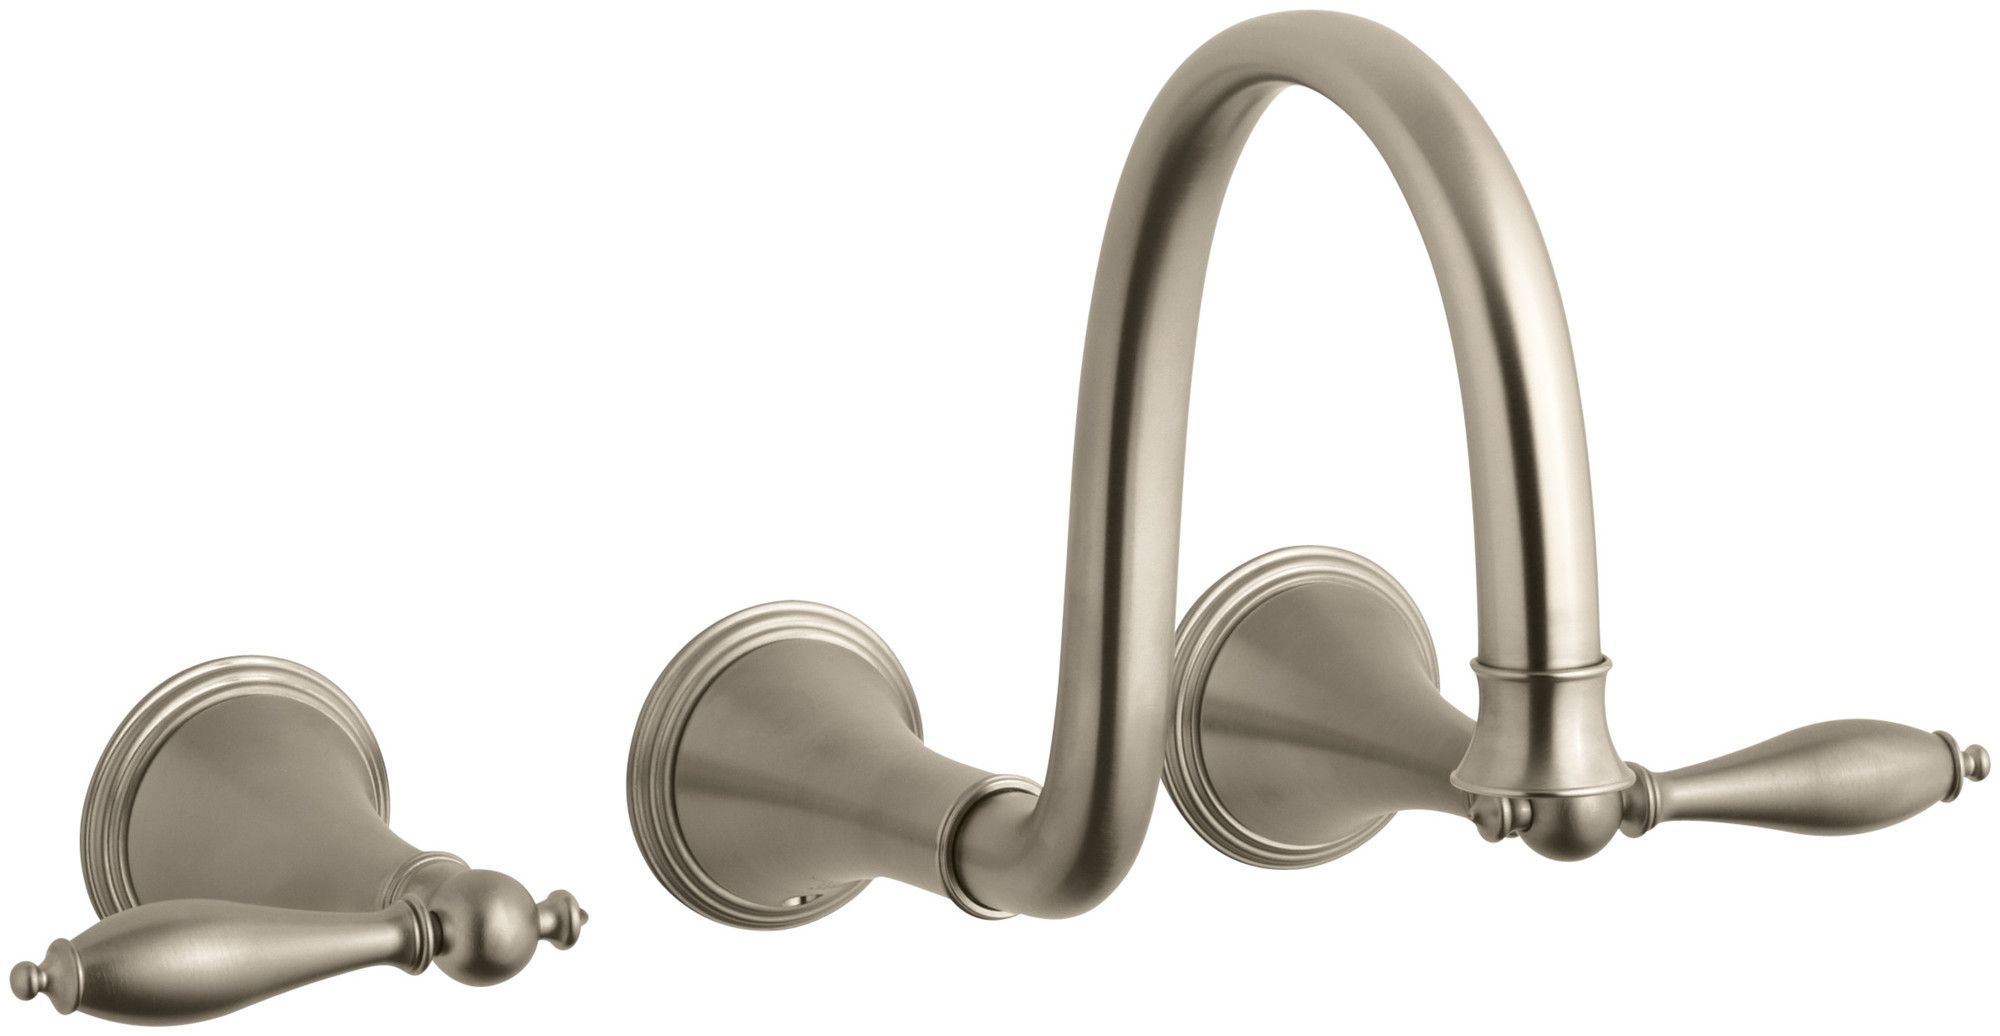 Finial Traditionalwall-Mount Bathroom Sink Faucet Trim with Lever ...